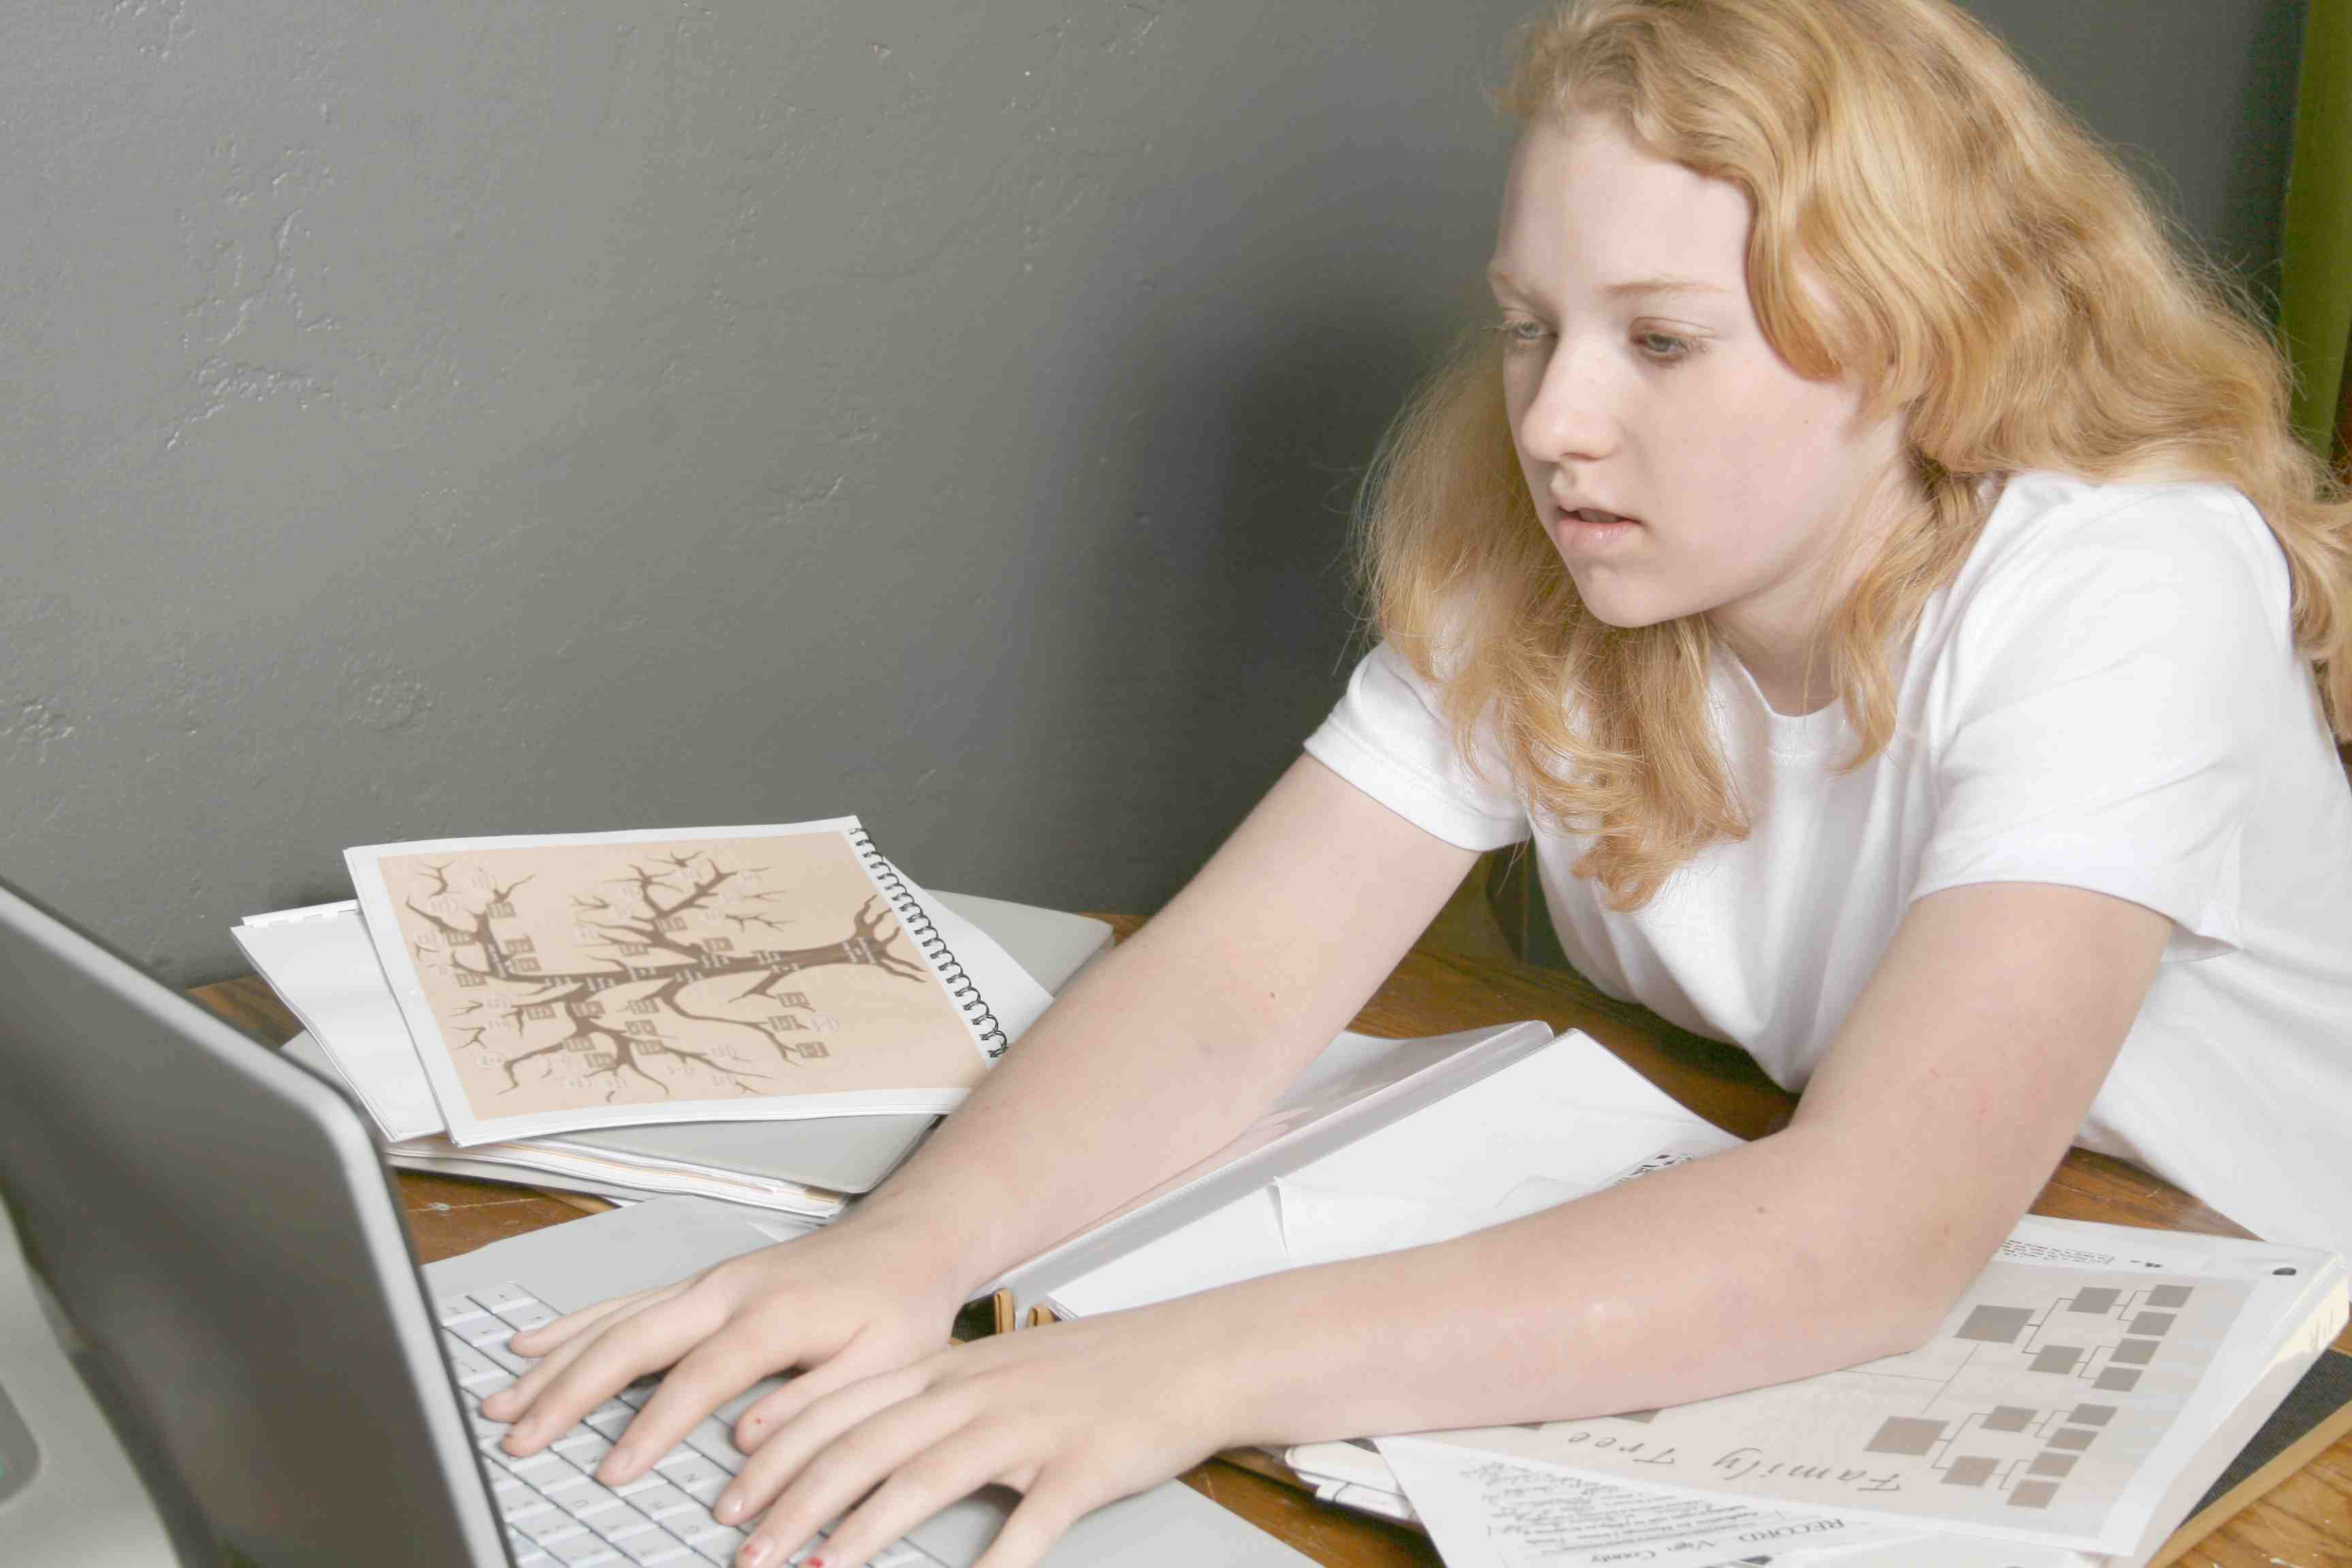 Studying genealogy with laptop computer